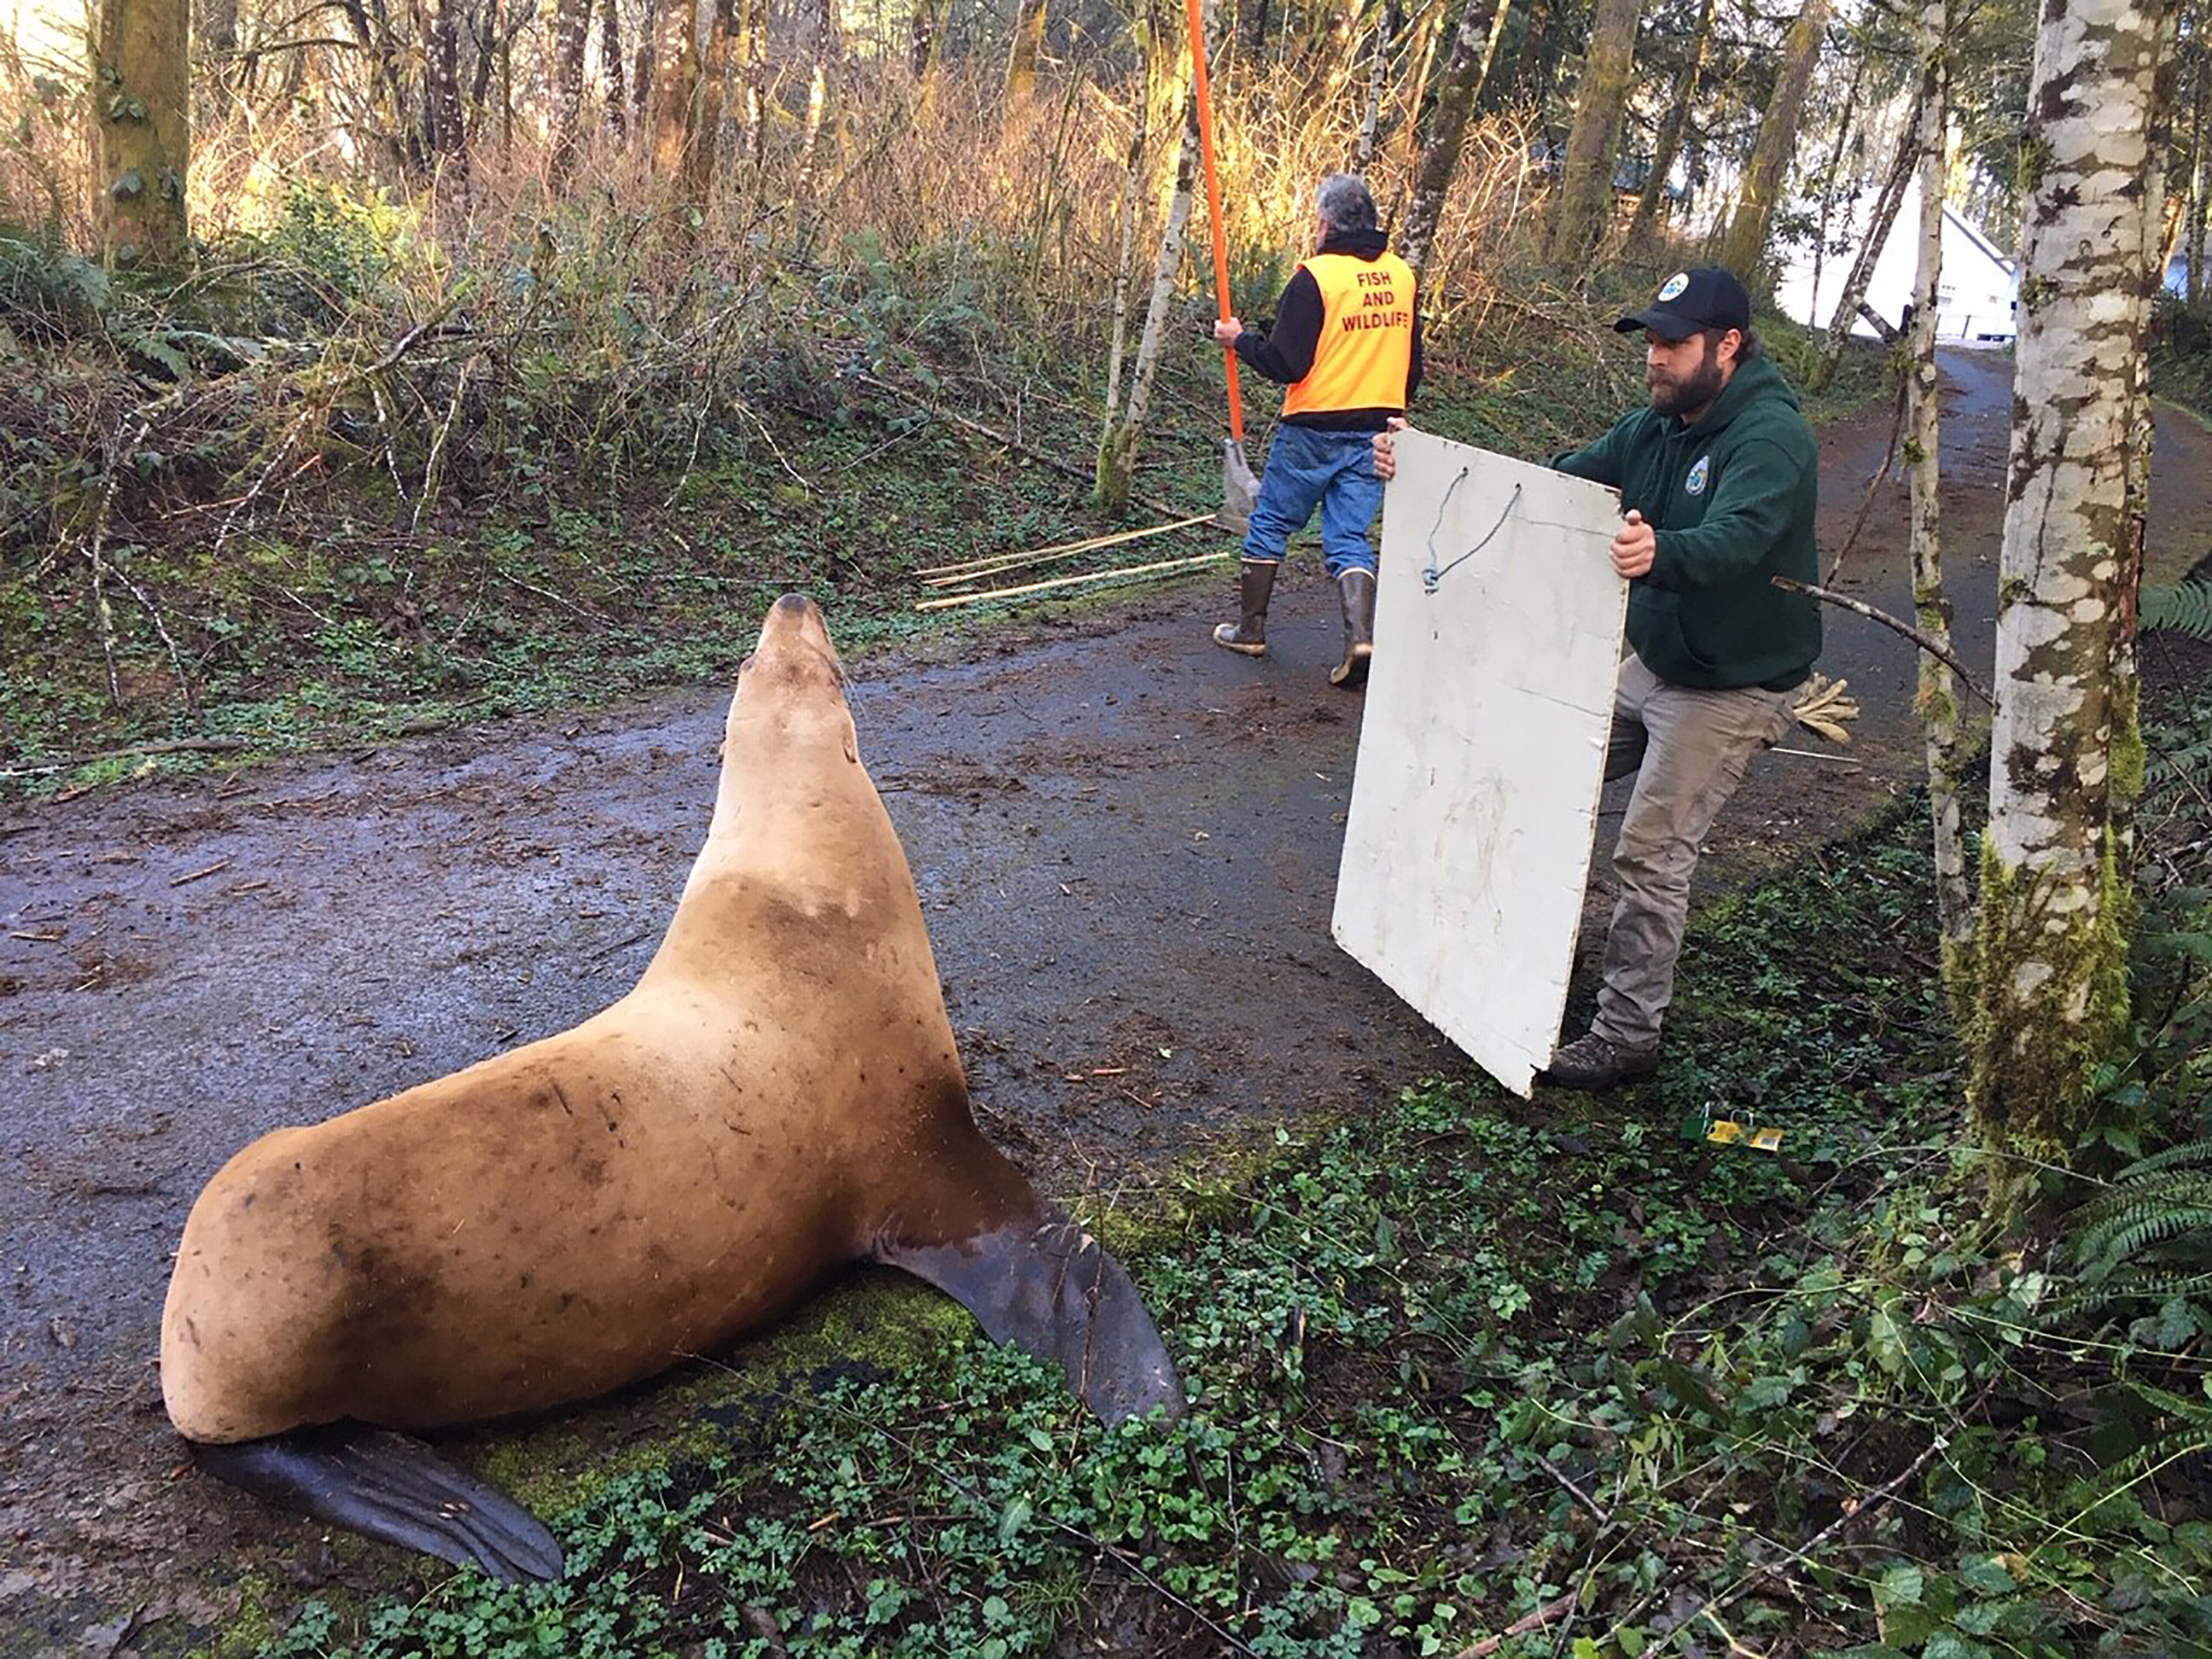 A 'wayward' sea lion found wandering miles from the water in Washington needed a little rescuing